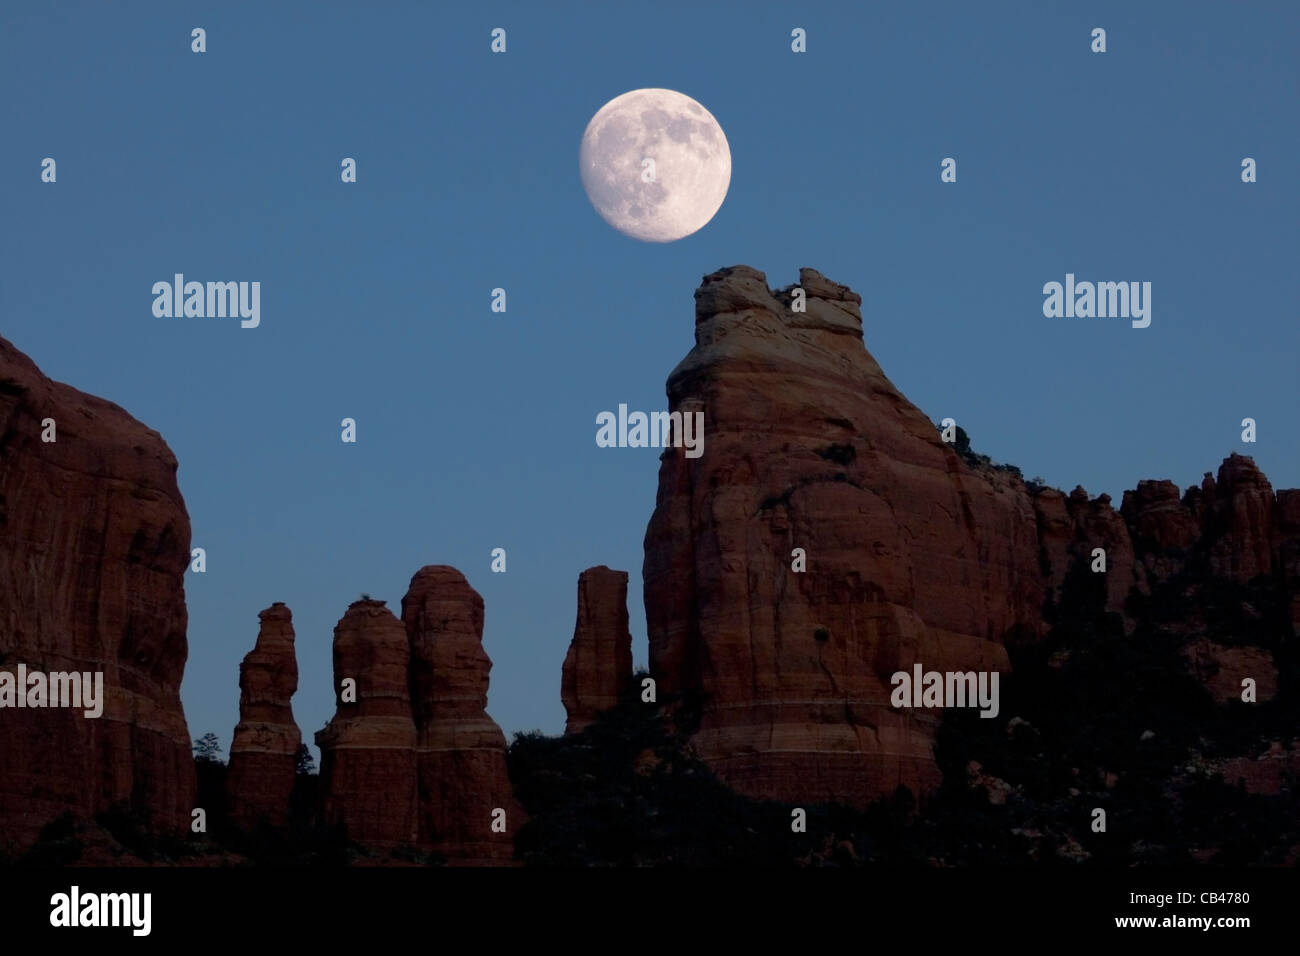 a nearly full moon rises over red rock spires near Sedona, Arizona - Stock Image